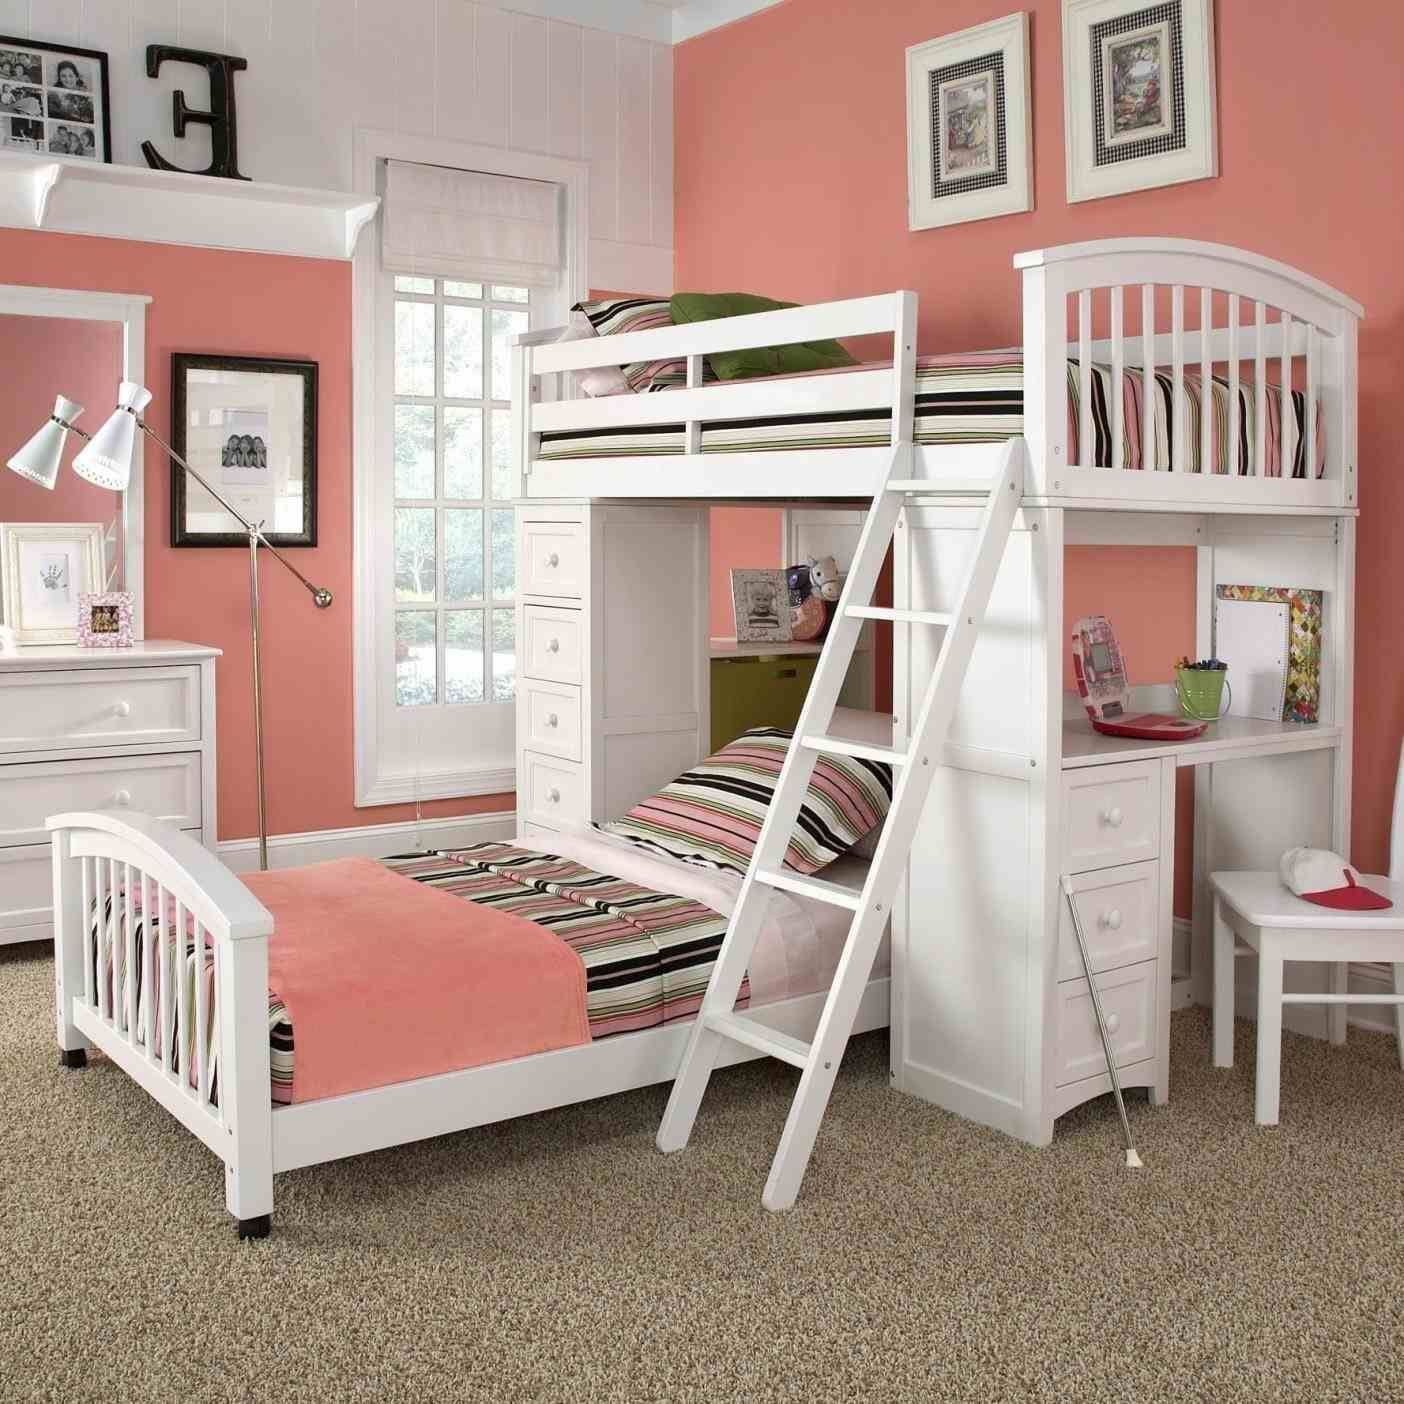 3 Beds In One Small Room Ideas Bedsmallroomideas Cool Bunk Beds